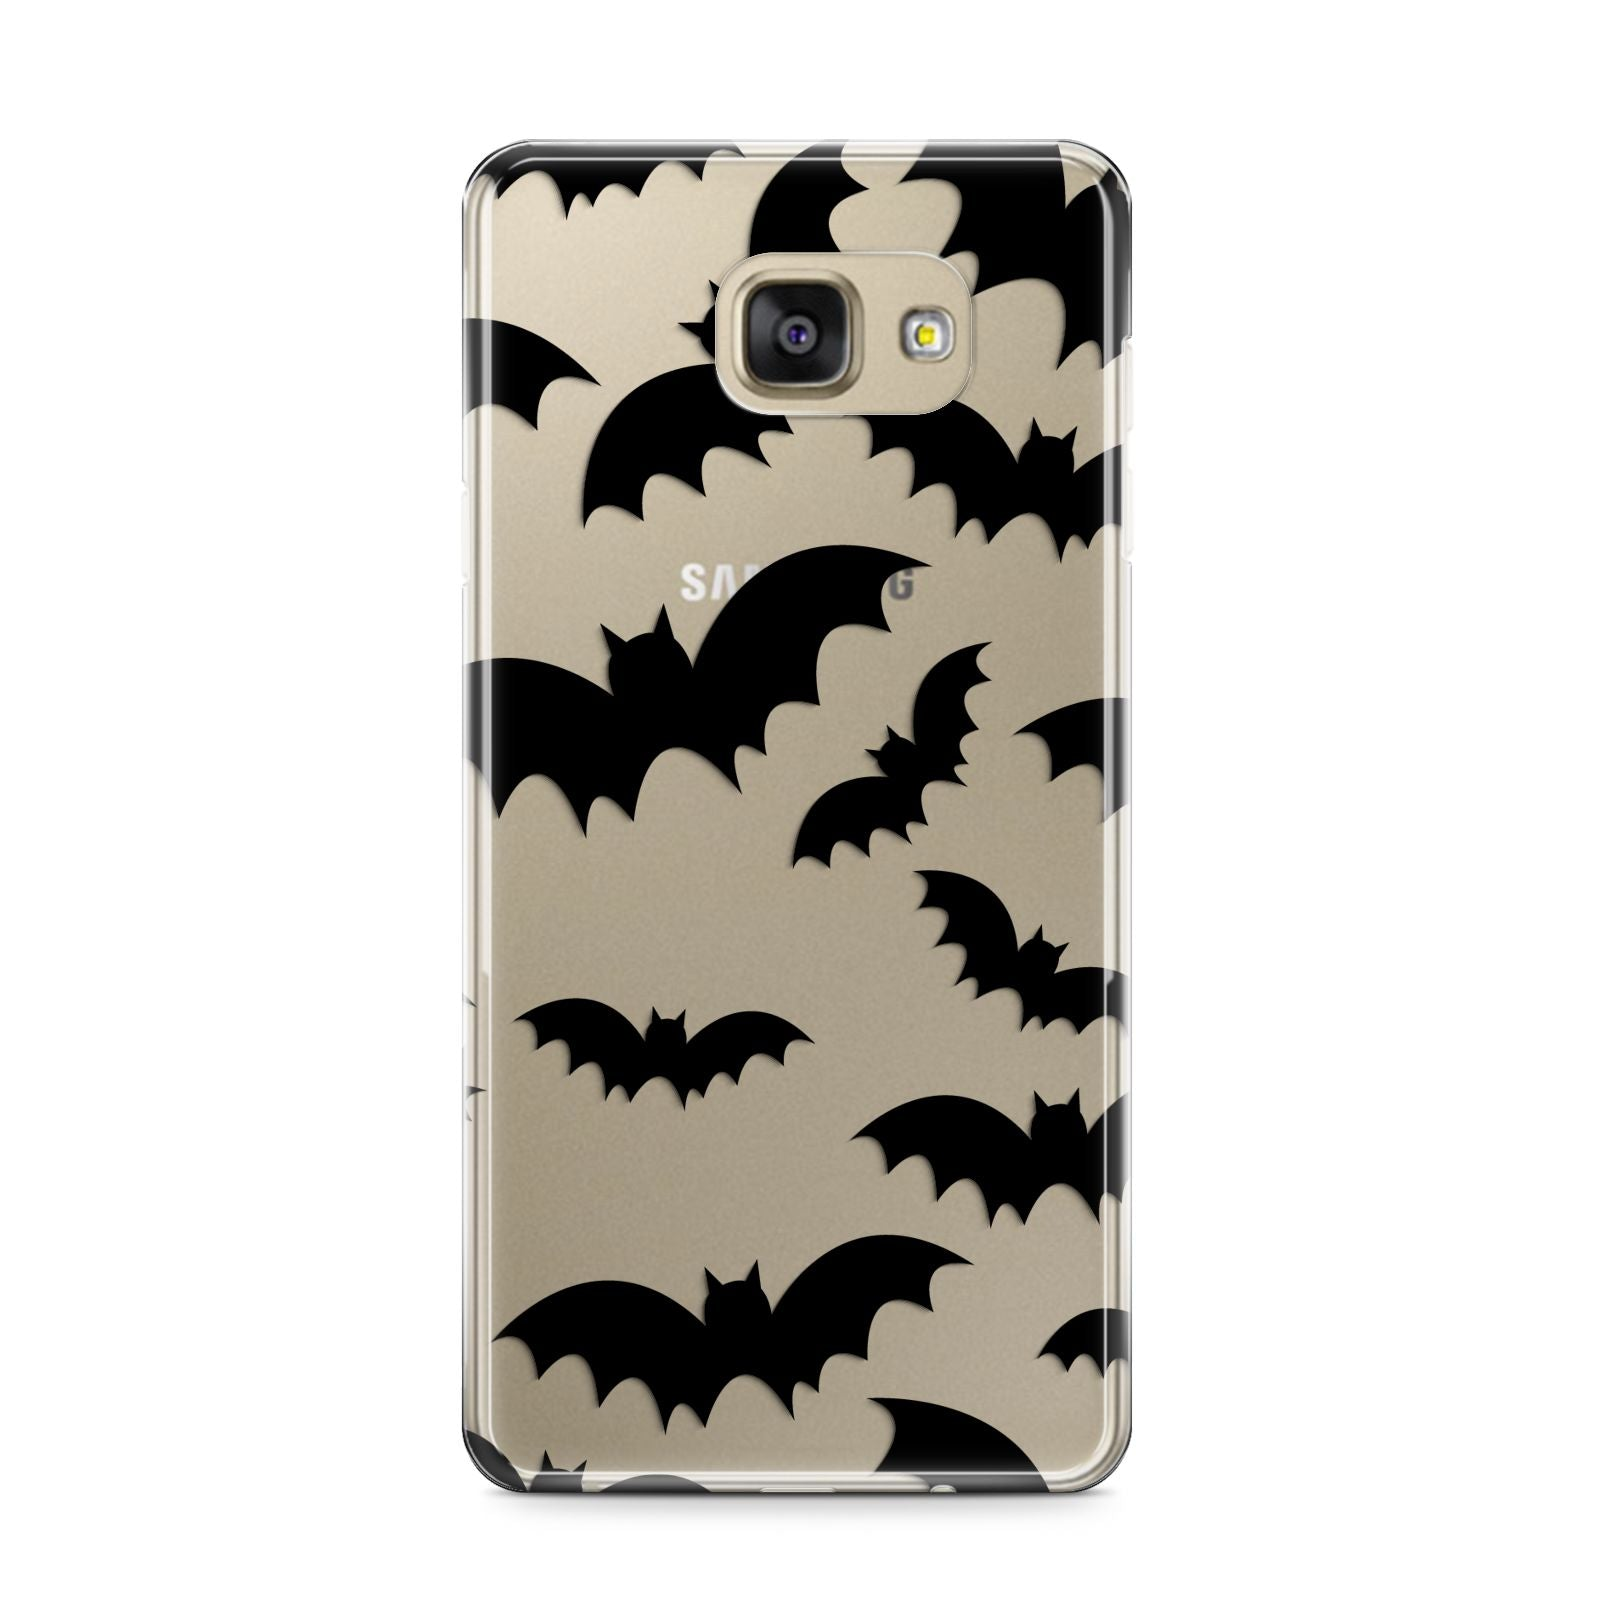 Bat Halloween Print Samsung Galaxy A9 2016 Case on gold phone